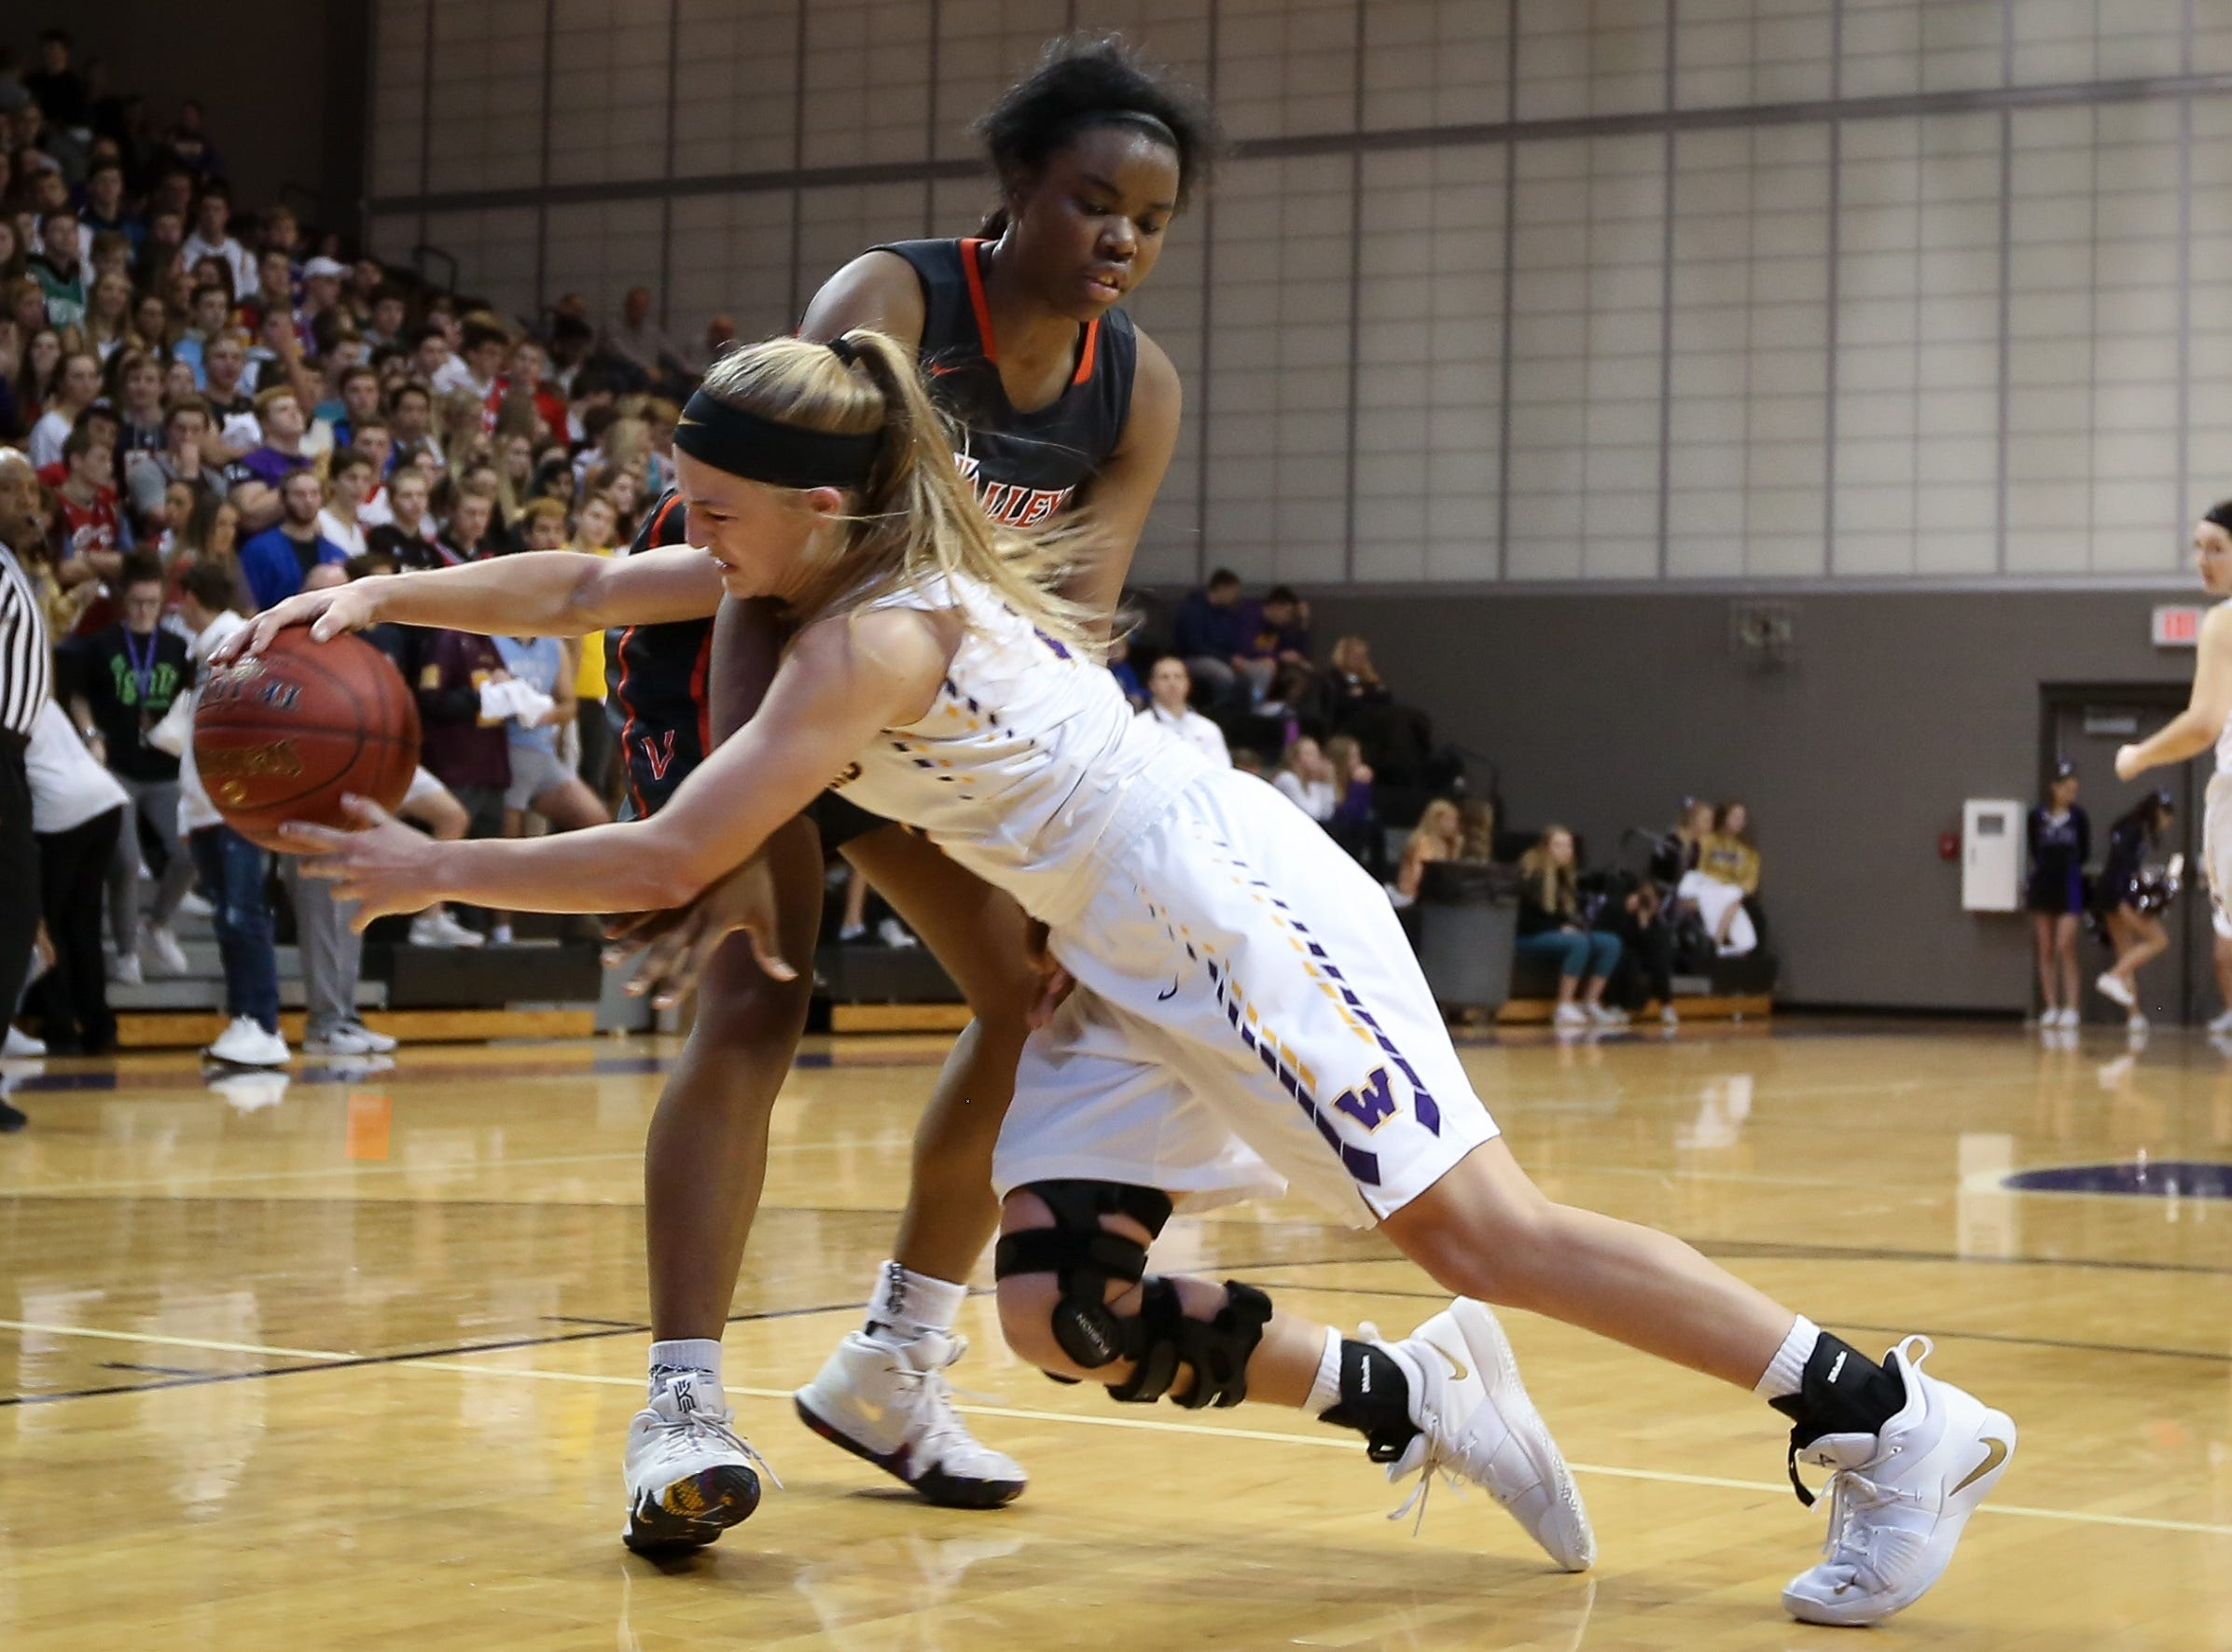 Waukee sophomore Katie Dinnebier pass the ball around Valley senior Zoe Young during a girls high school basketball game between the Valley Tigers and the Waukee Warriors at Waukee High School on Dec. 14, 2018 in Waukee, Iowa.